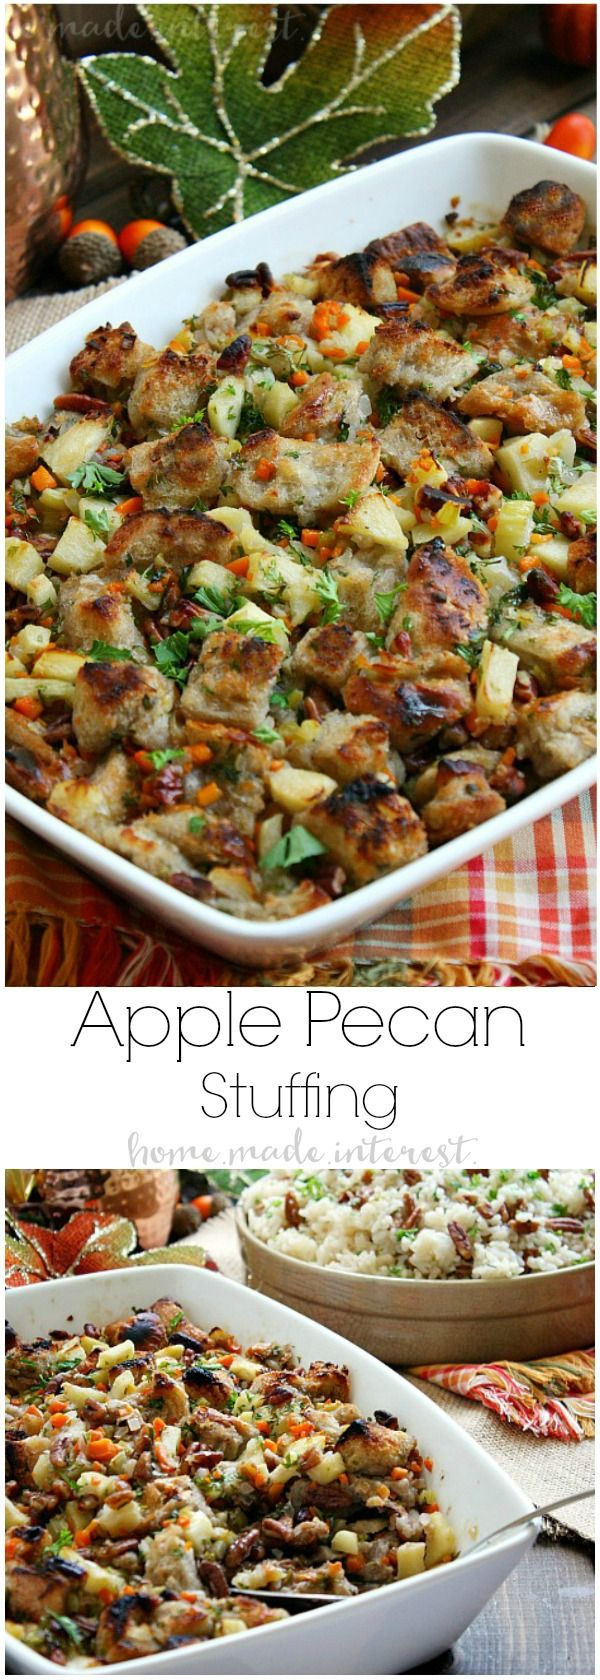 This Apple Pecan Stuffing recipe is a delicious blend of buttery bread cubes, apples, and pecans. Make this Thanksgiving stuffing